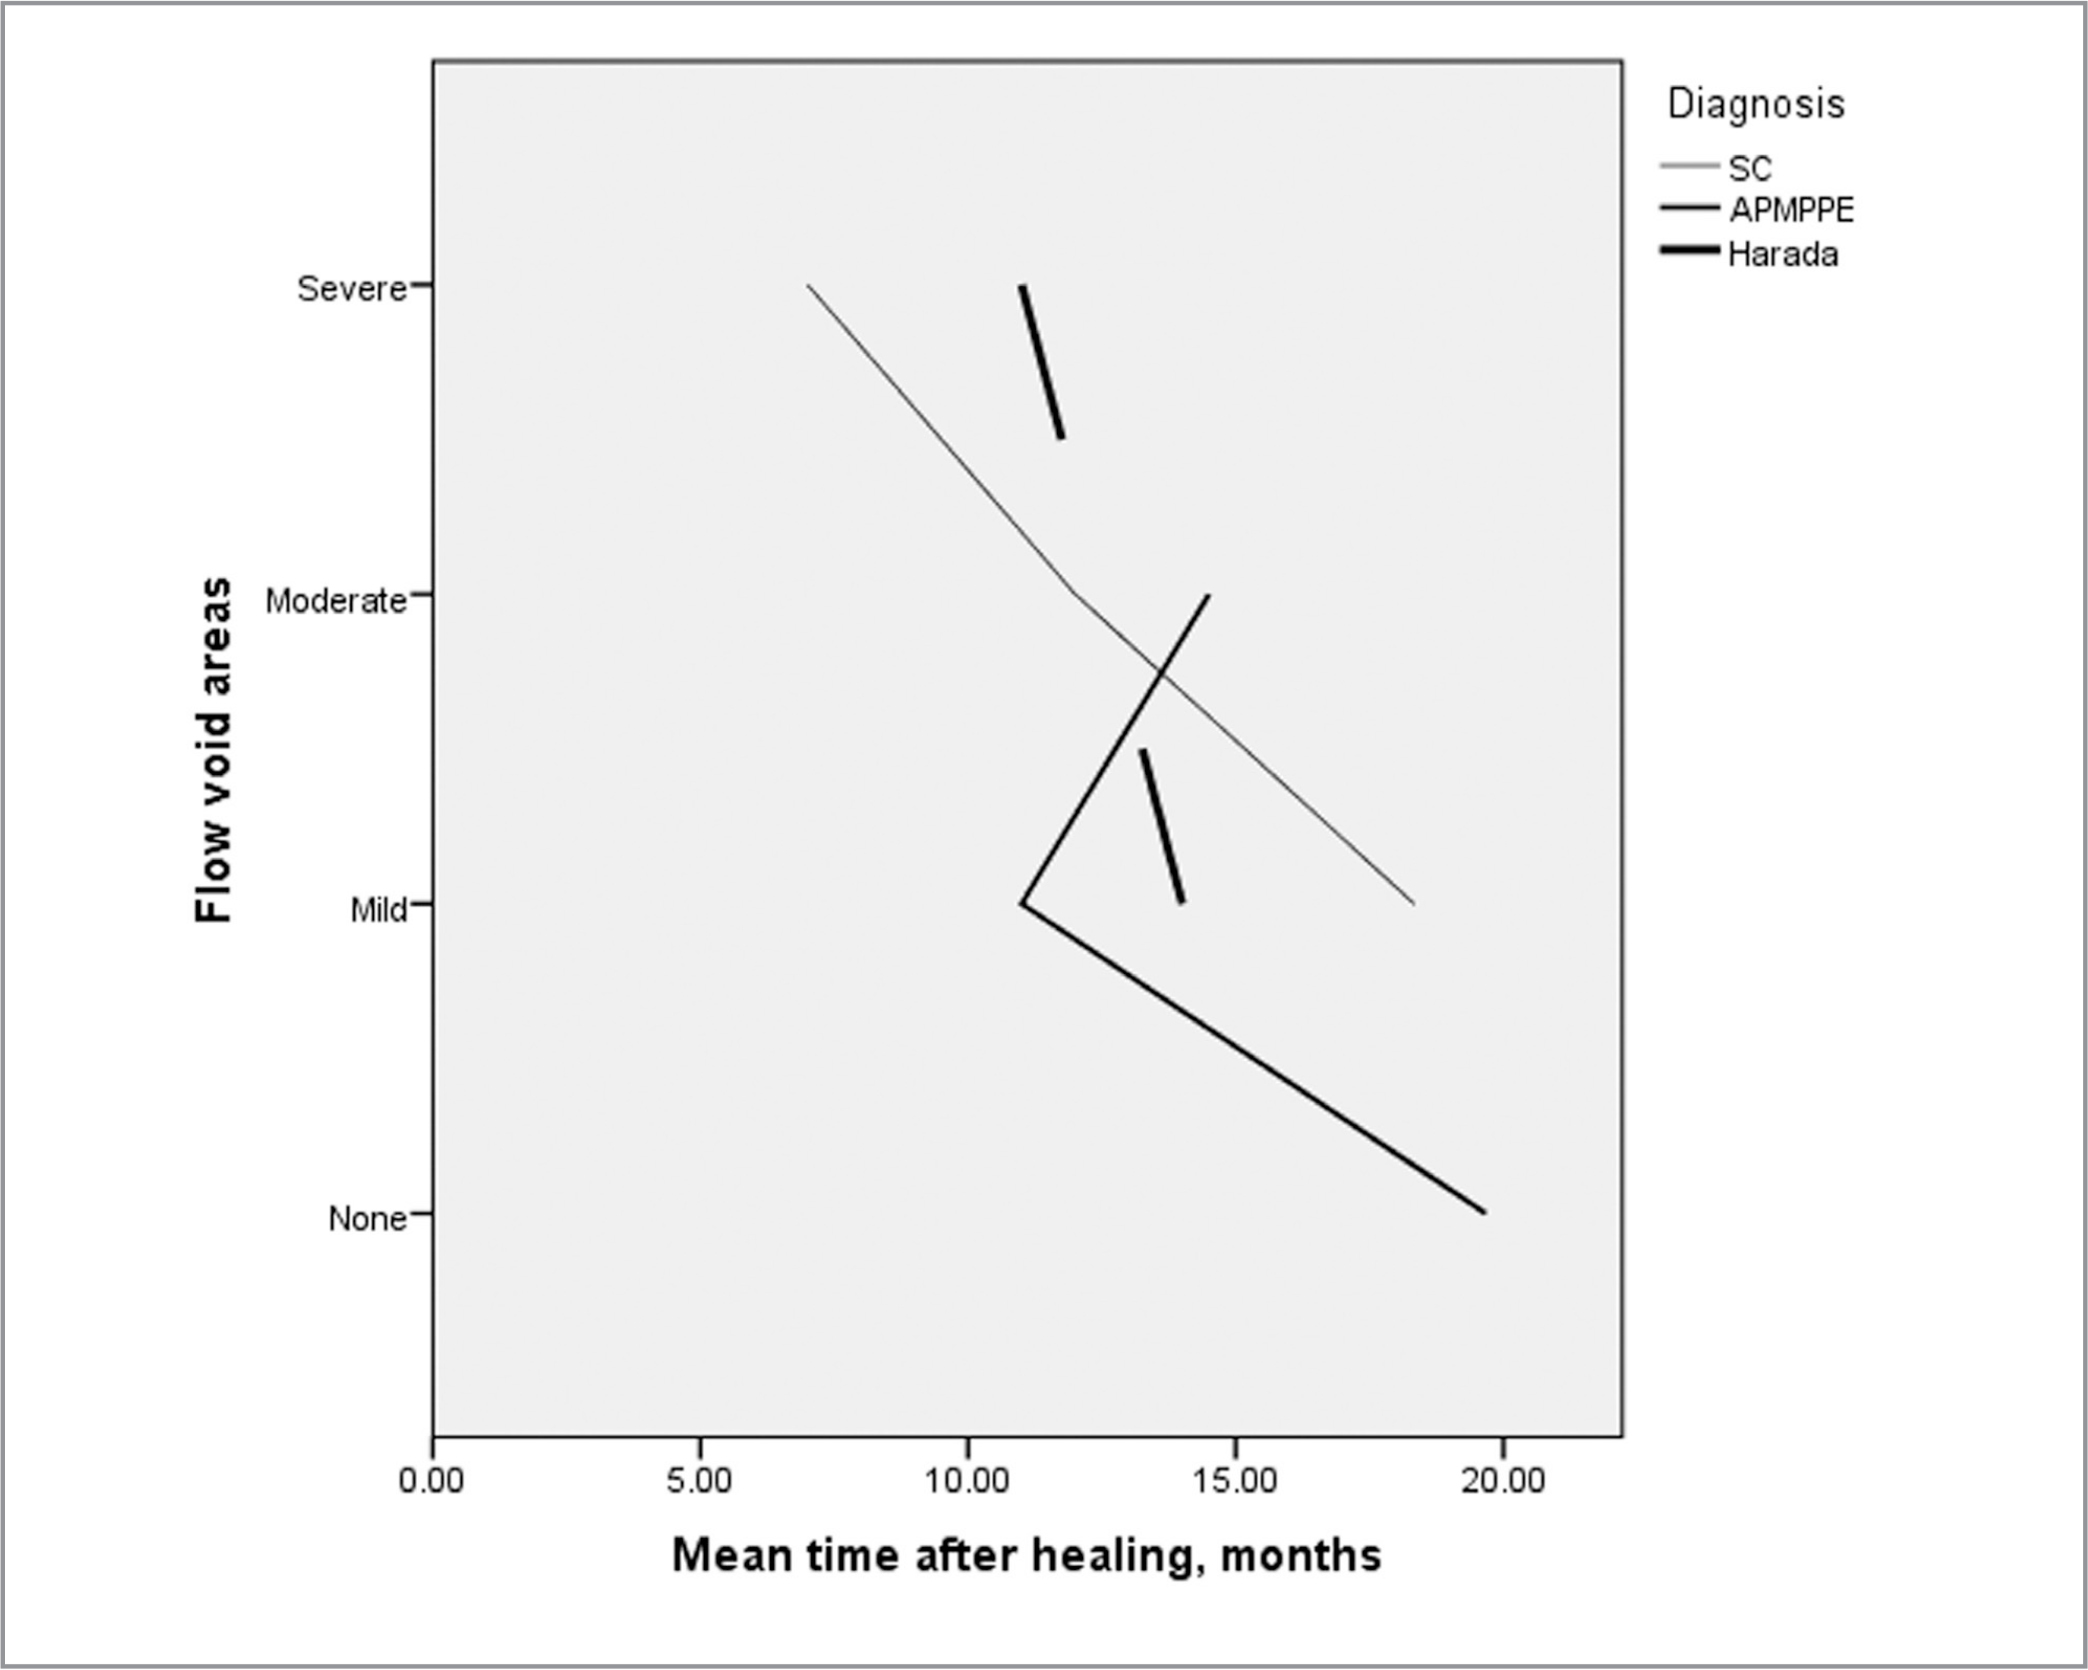 Relationship between time after healing and low flow. APMPPE = acute posterior multifocal placoid pigment epitheliopathy; SC = serpiginous choroiditis